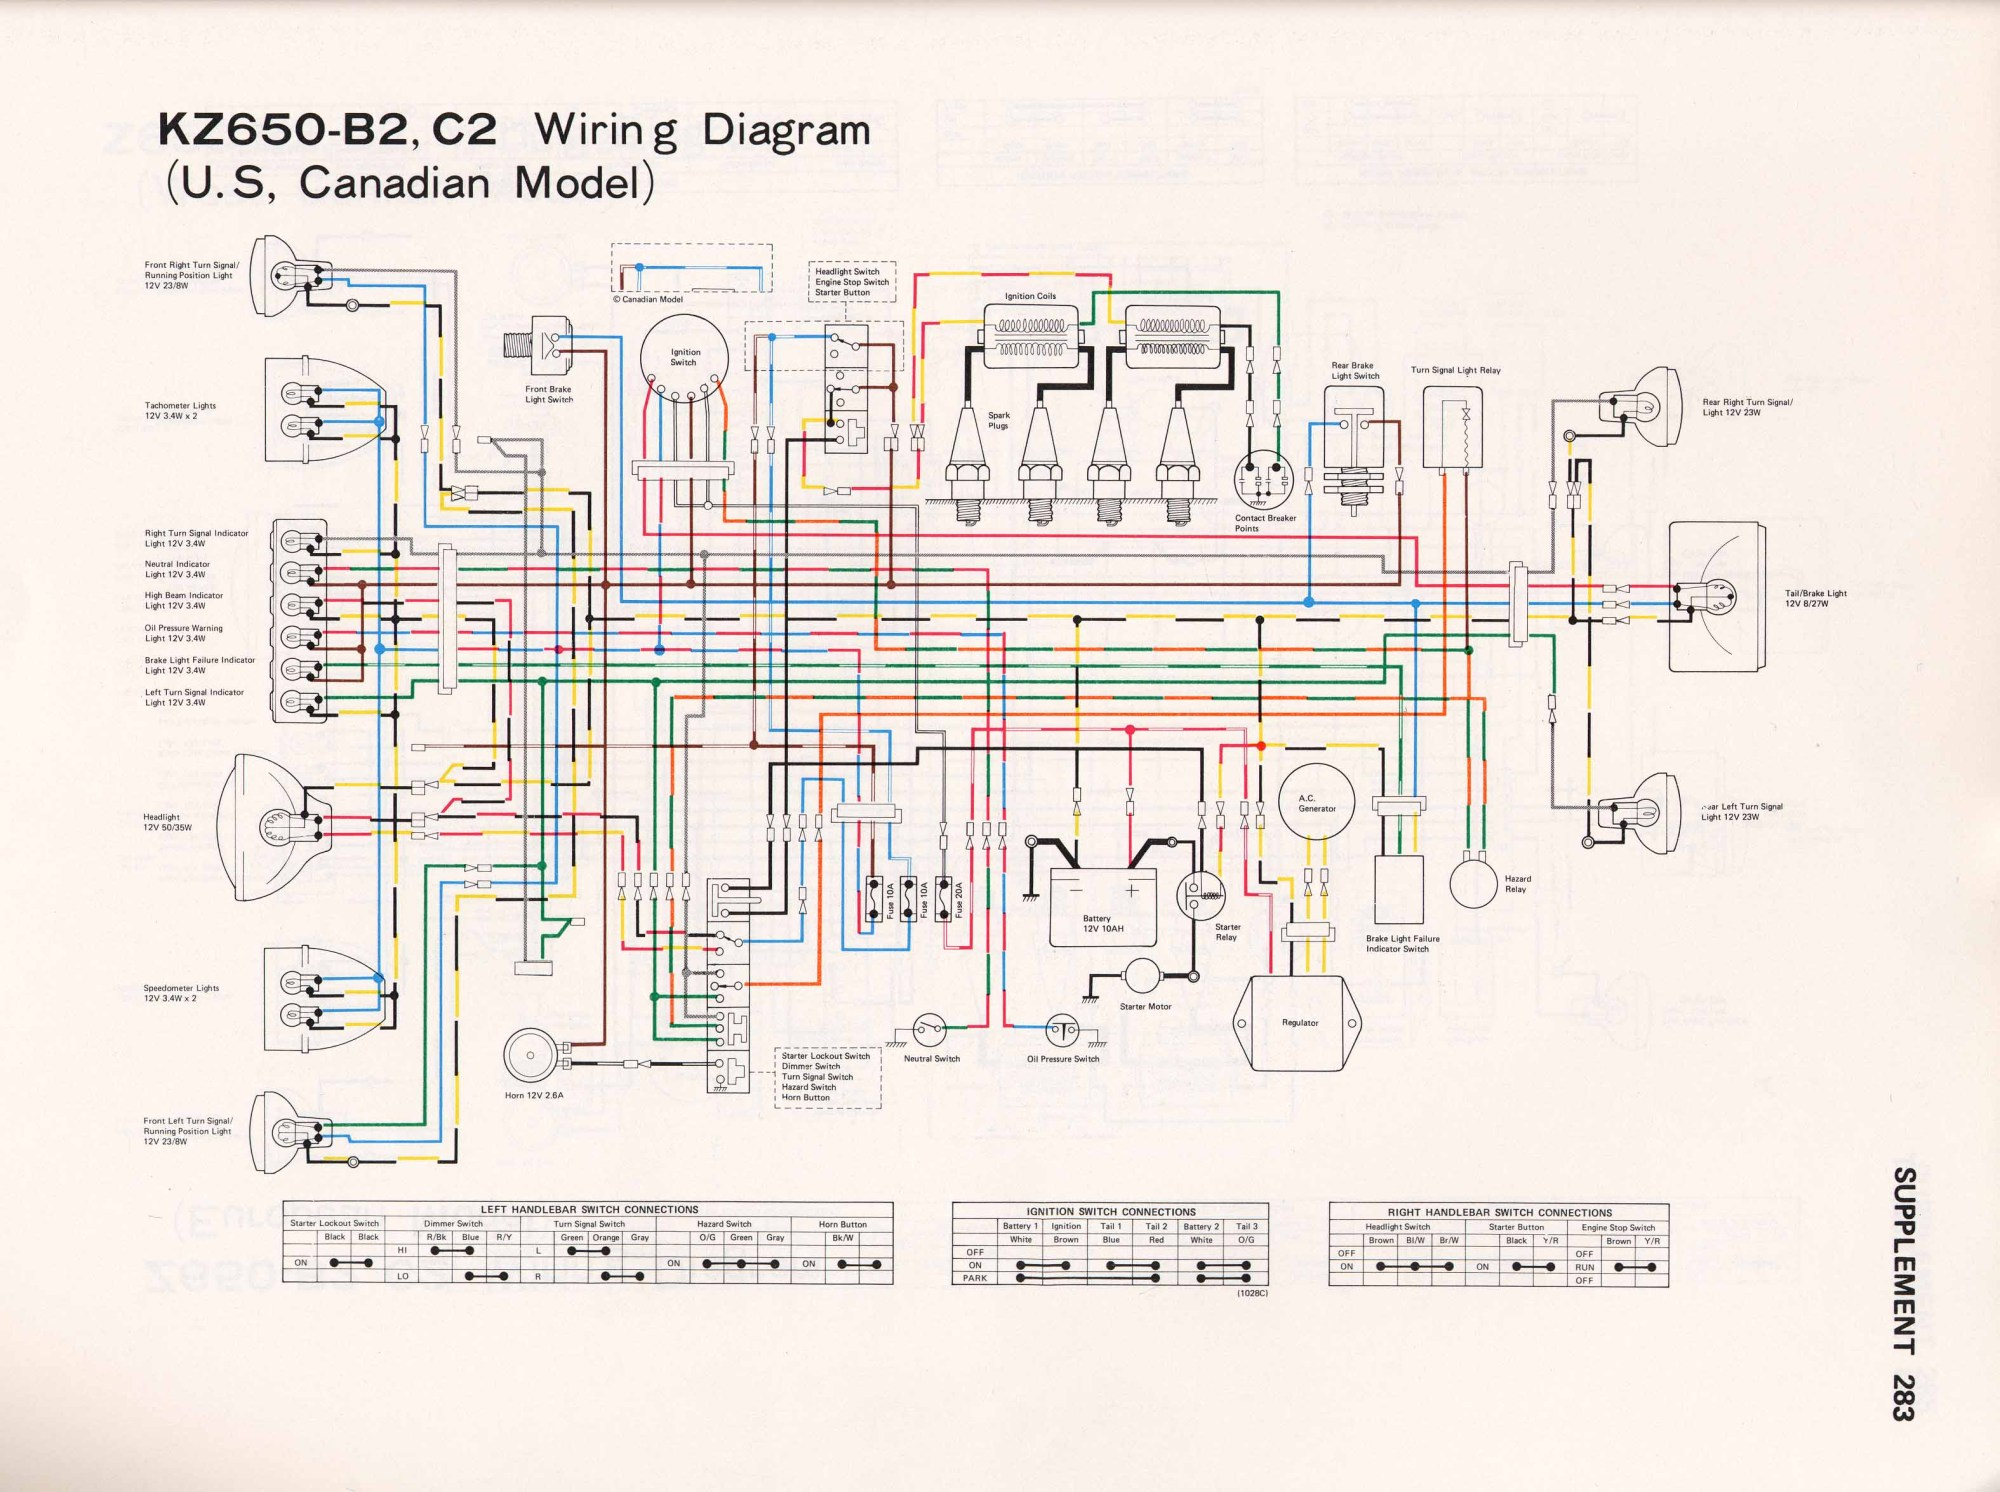 hight resolution of http diagrams kz650 info wiring images kz650 b2 c2 jpg